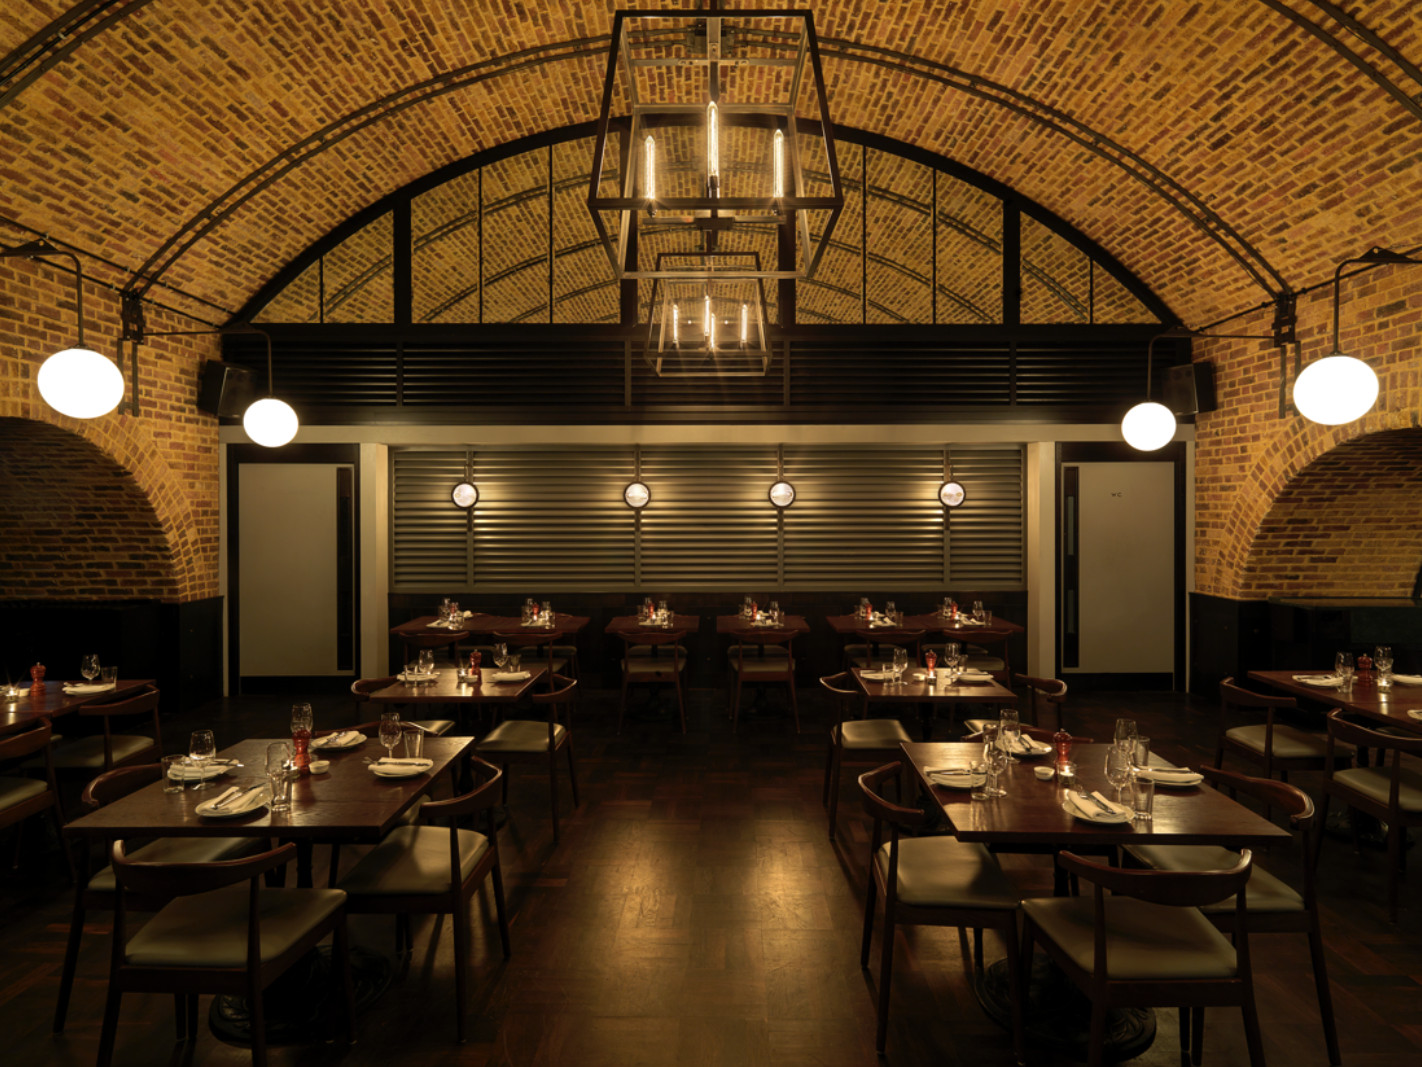 London restaurant beagle london fabled studio - Vencedores Do Quot Restaurant Amp Bar Design Award 2014